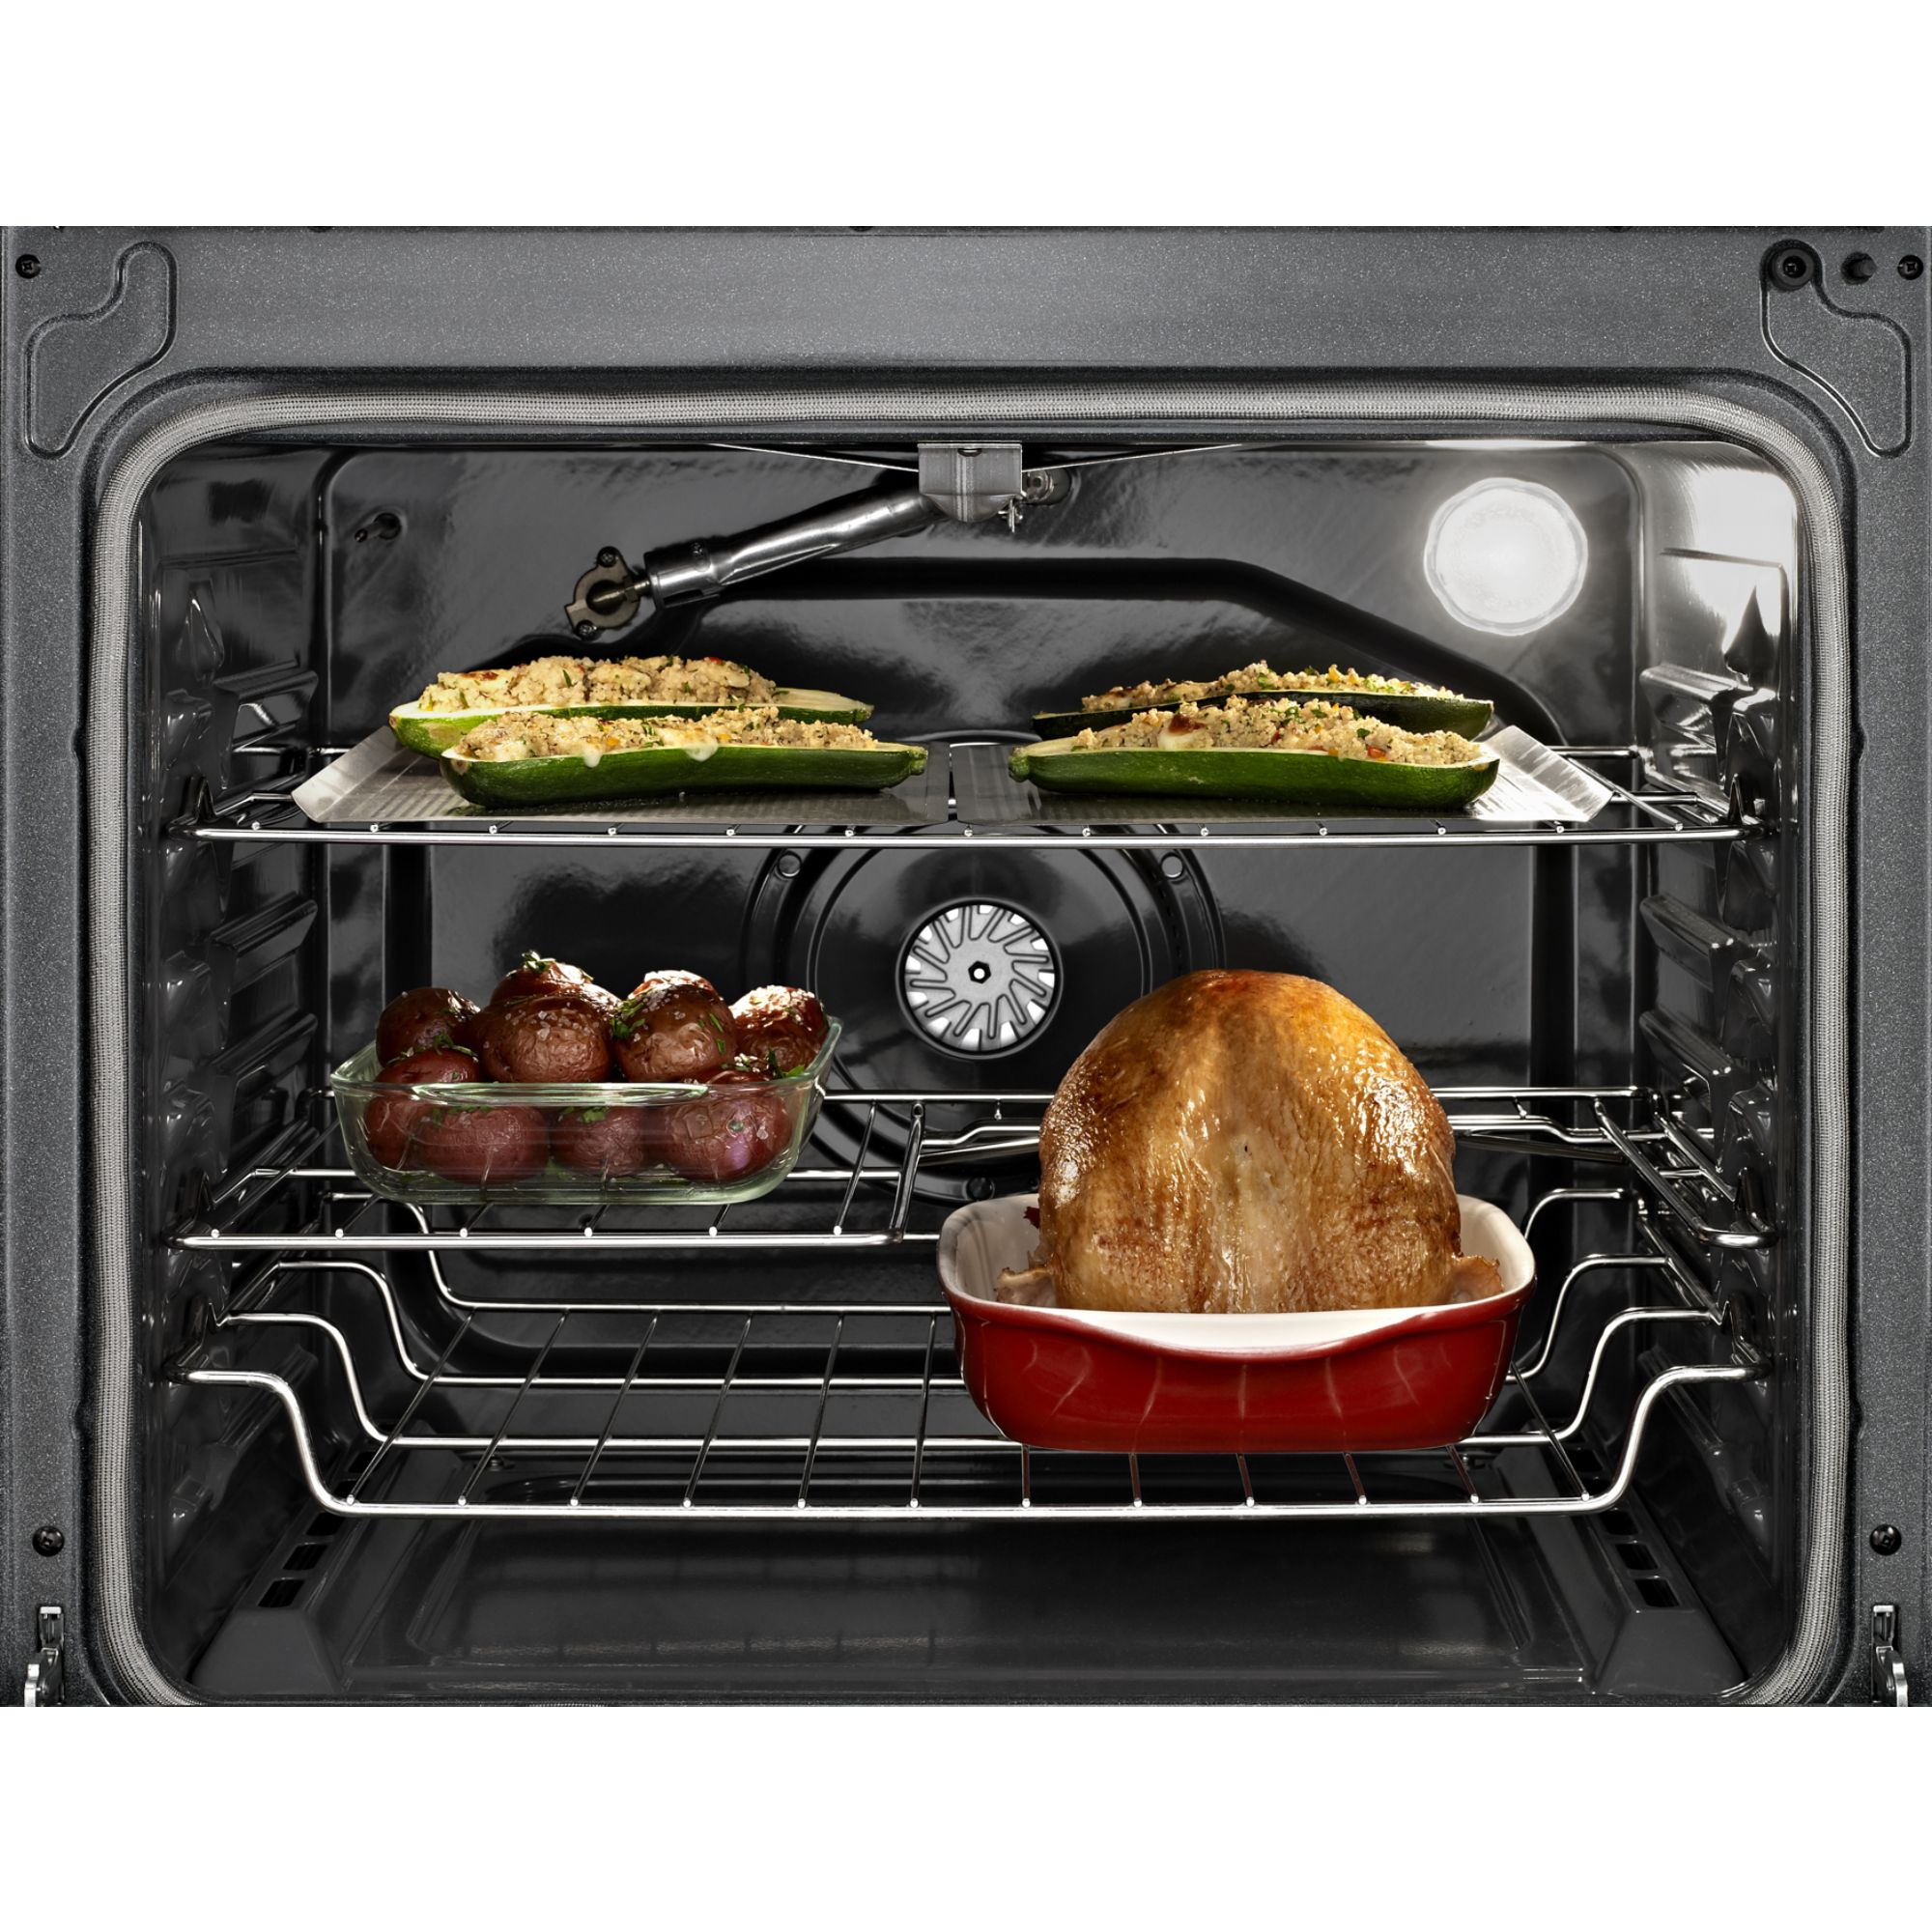 Whirlpool 5.8 cu. ft. Freestanding Gas Range w/ Rapid Preheat - Black Ice